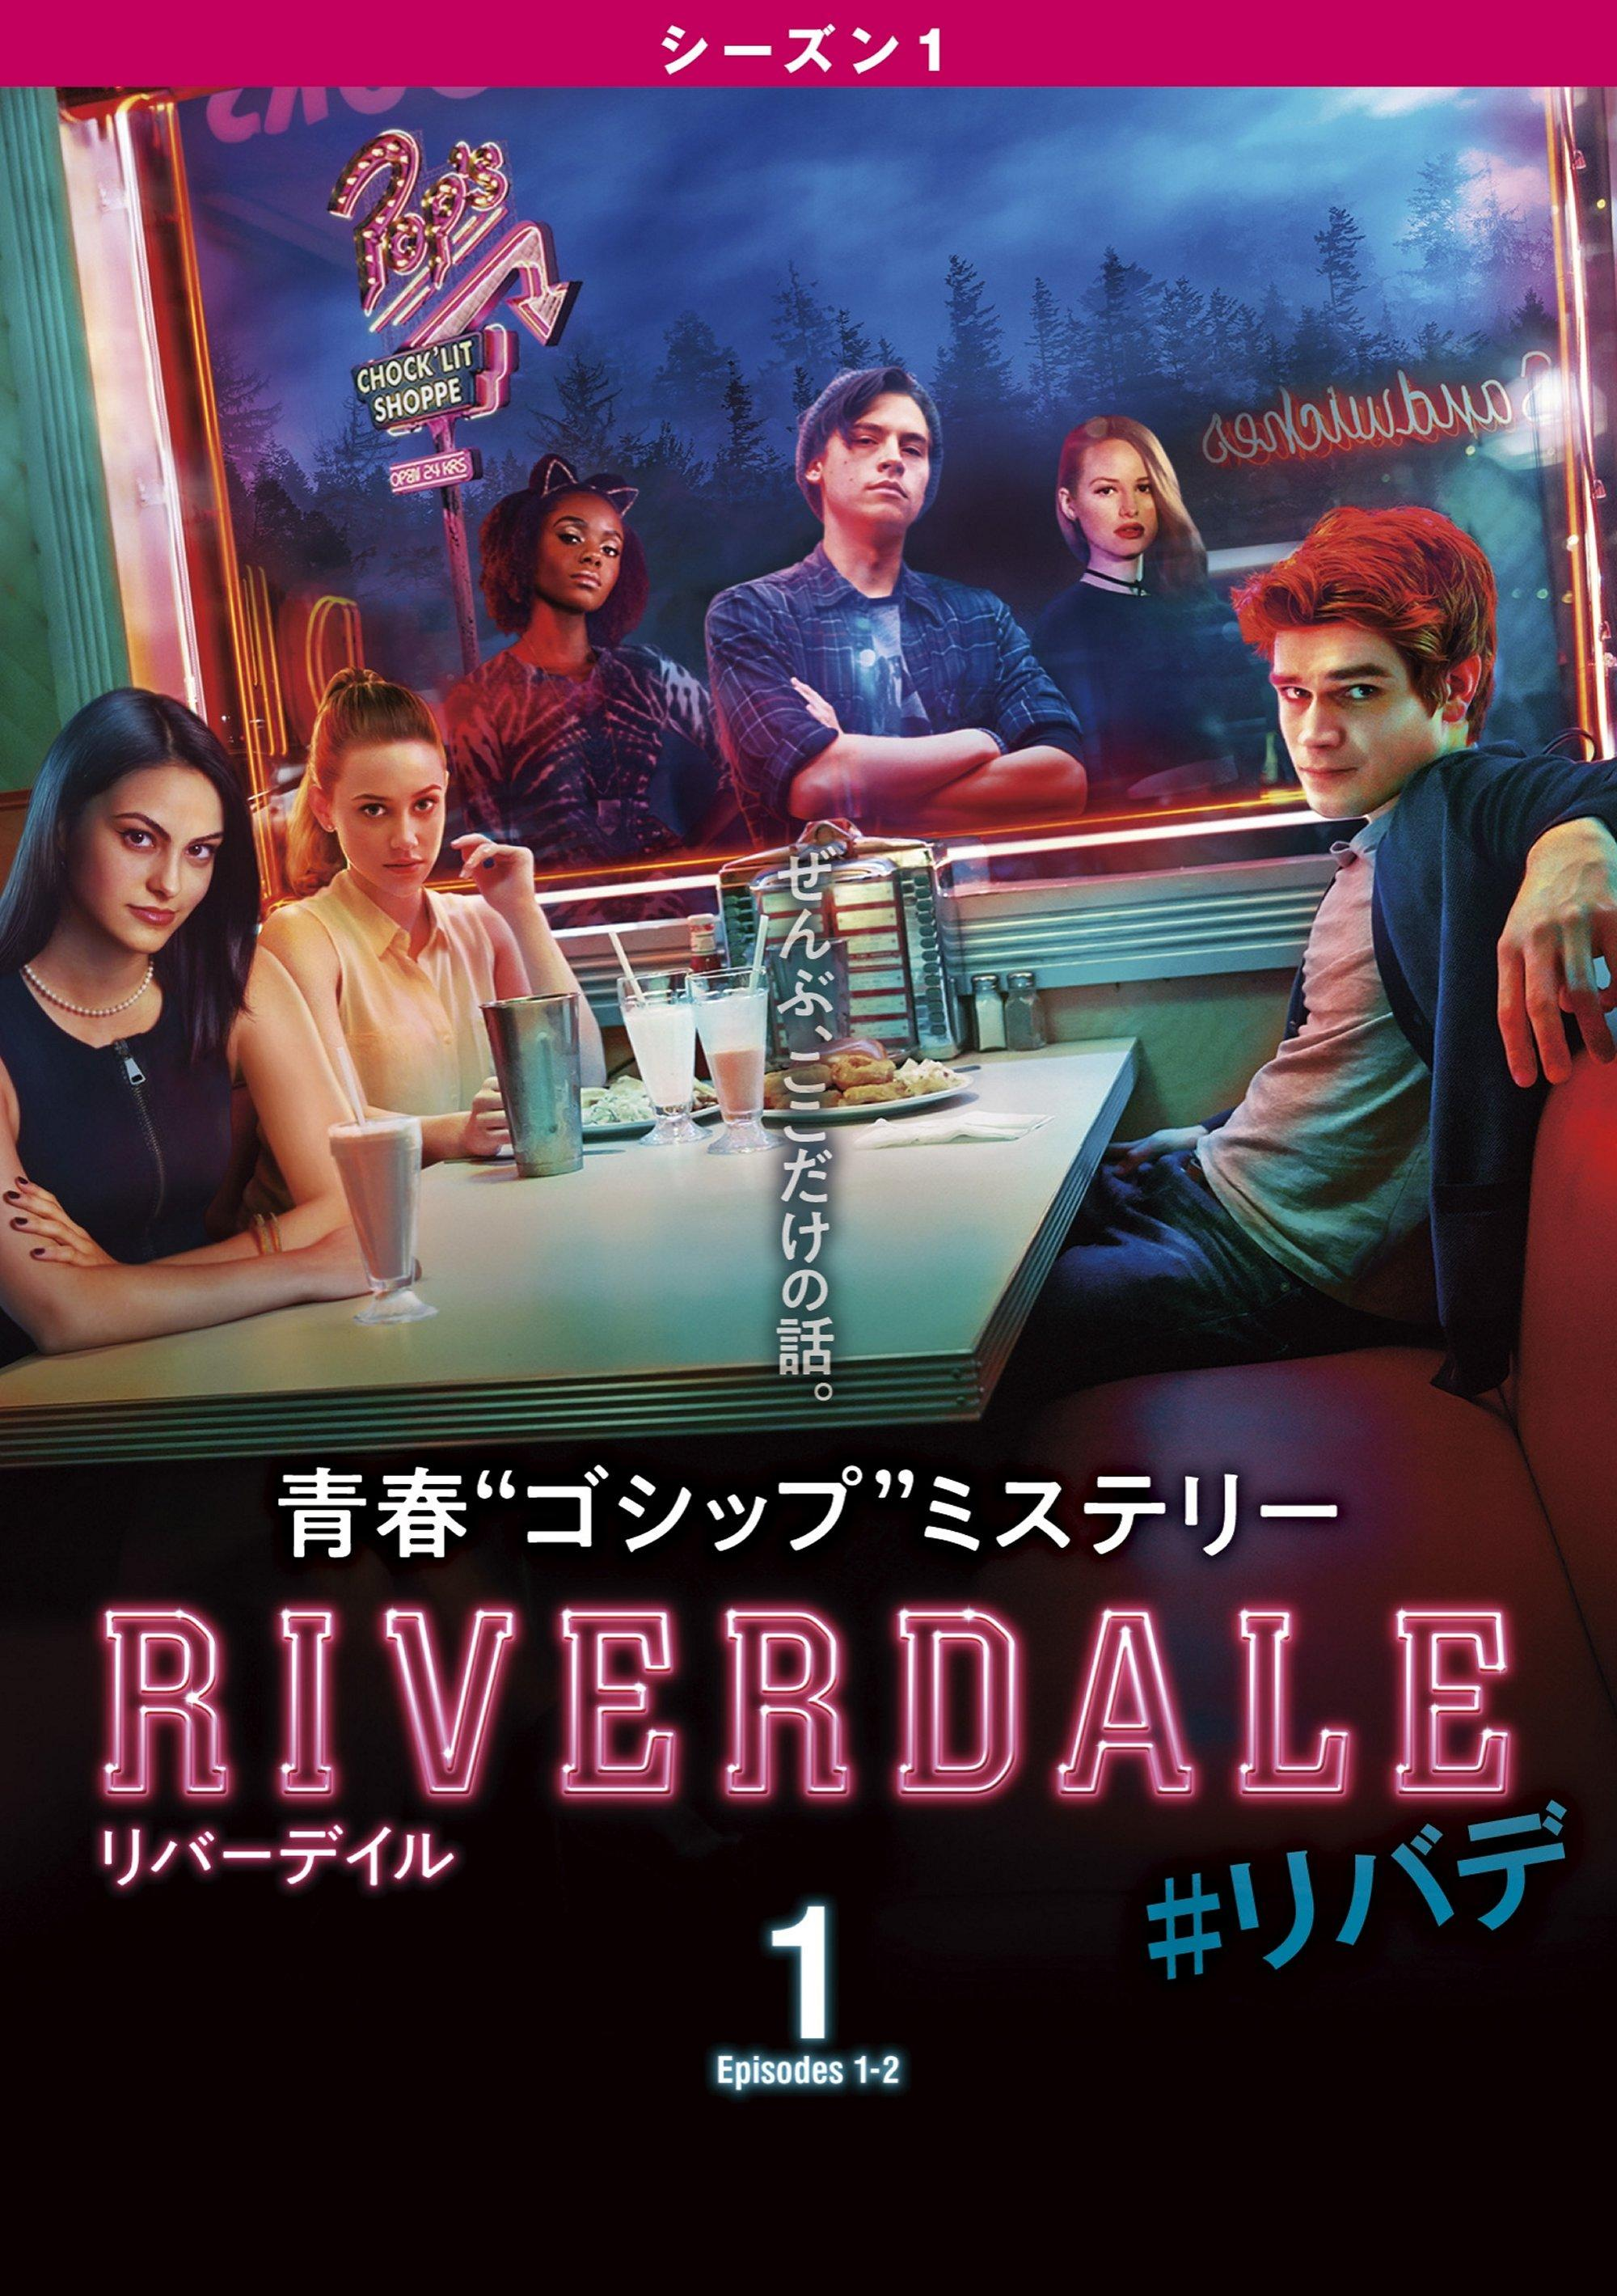 20180809_riverdale_jacket.jpeg